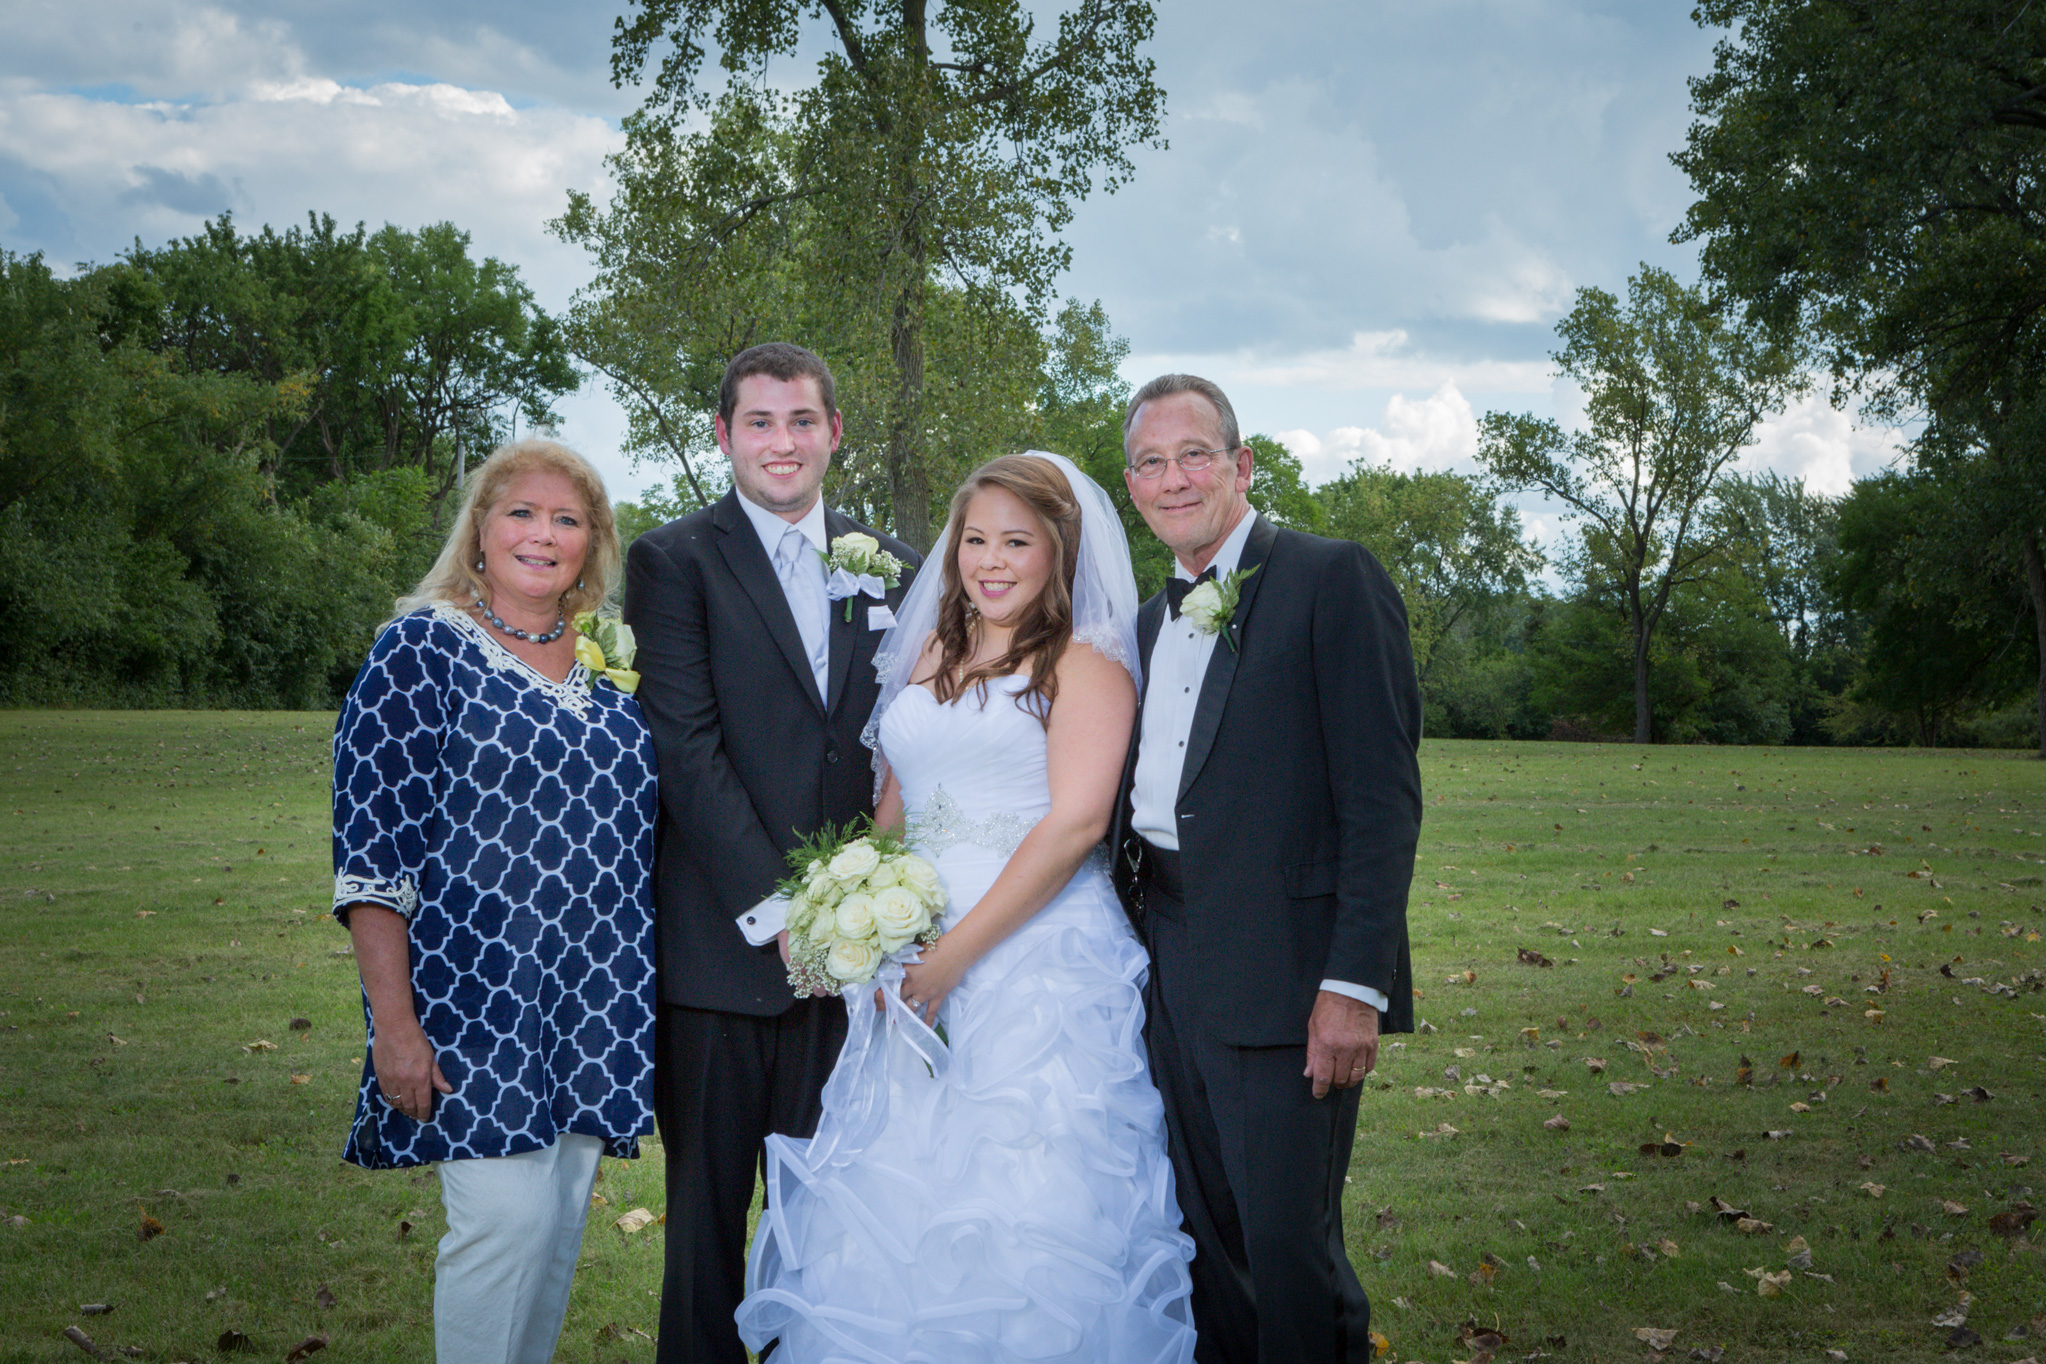 bride_groom_family_photography_2.jpg